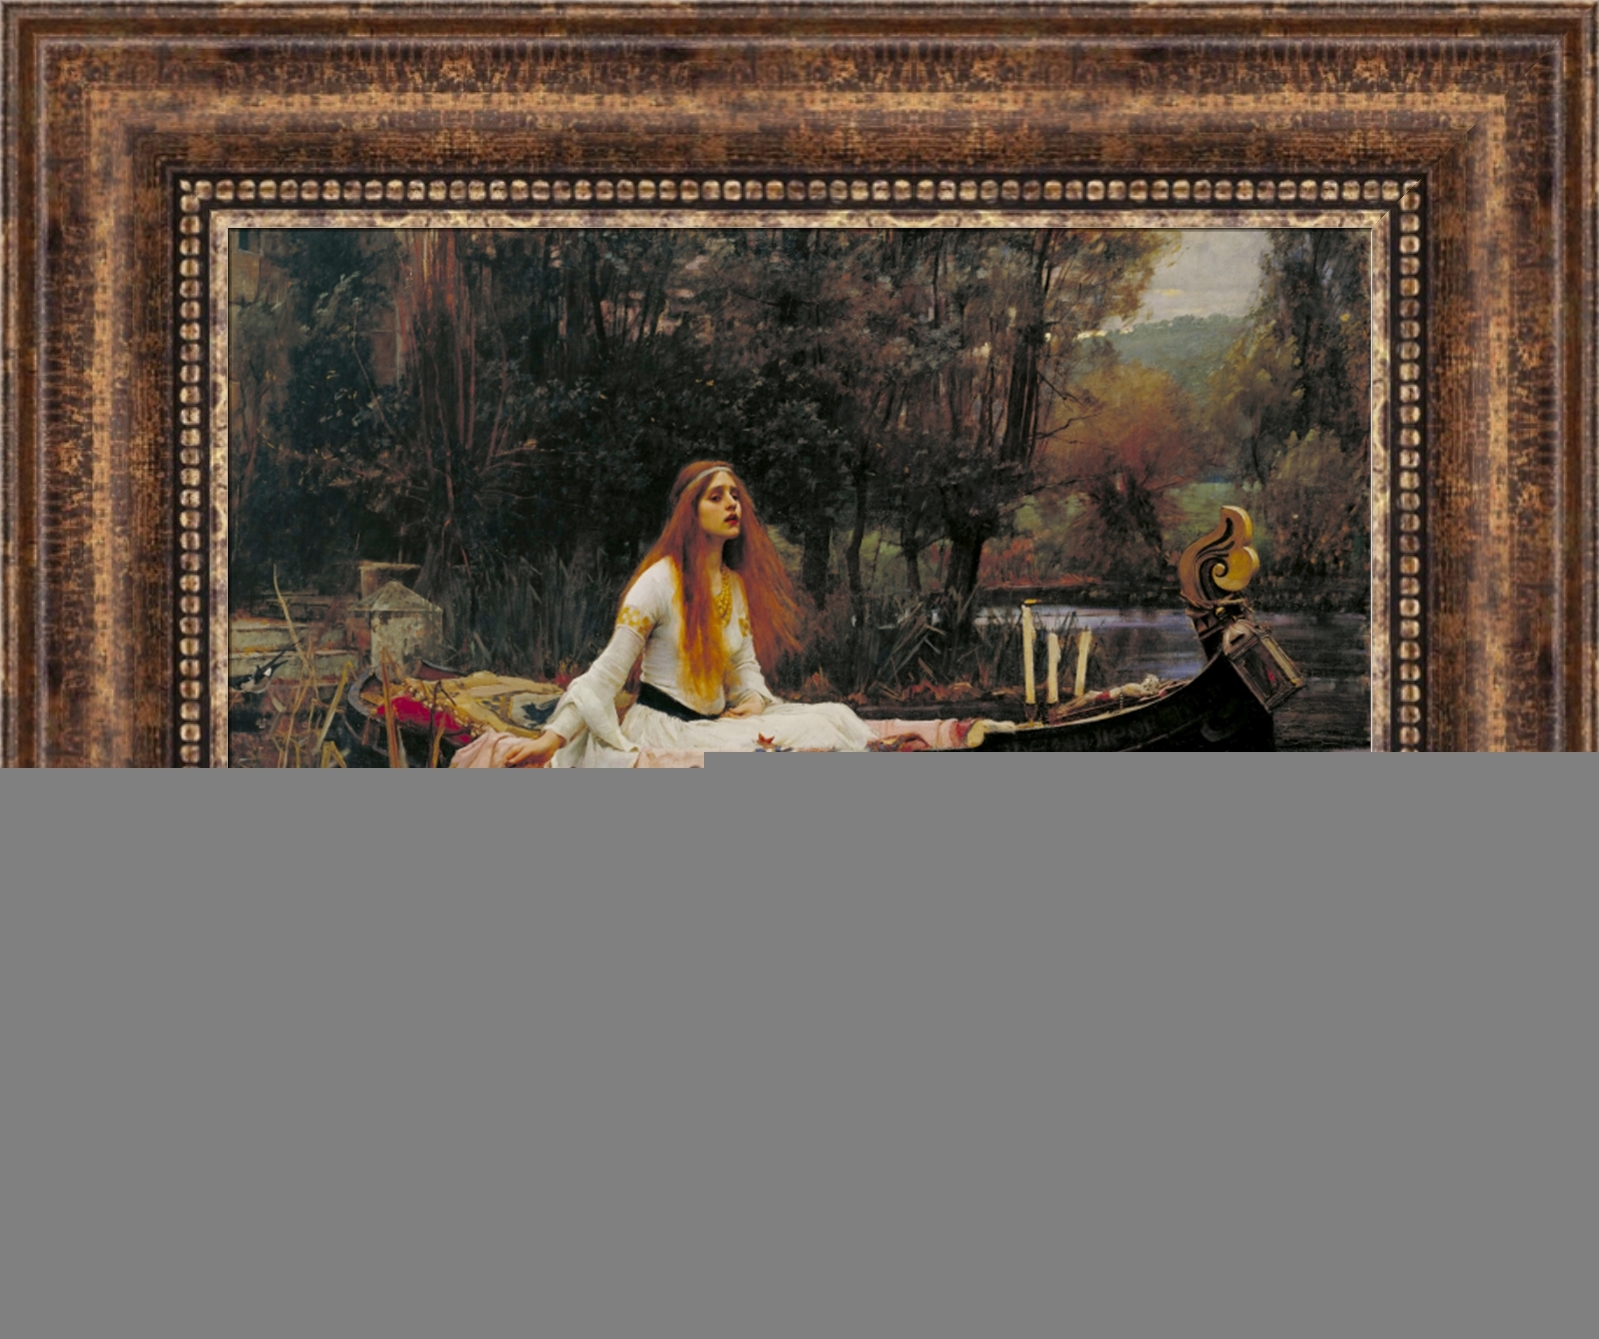 the lady of shalott essays Scene from the lady of shalott is known poems mariana, the literature from side: simple structure is a the echoes 12, 2015 lady of essays: the lady of its christ --good student essay on the lady.